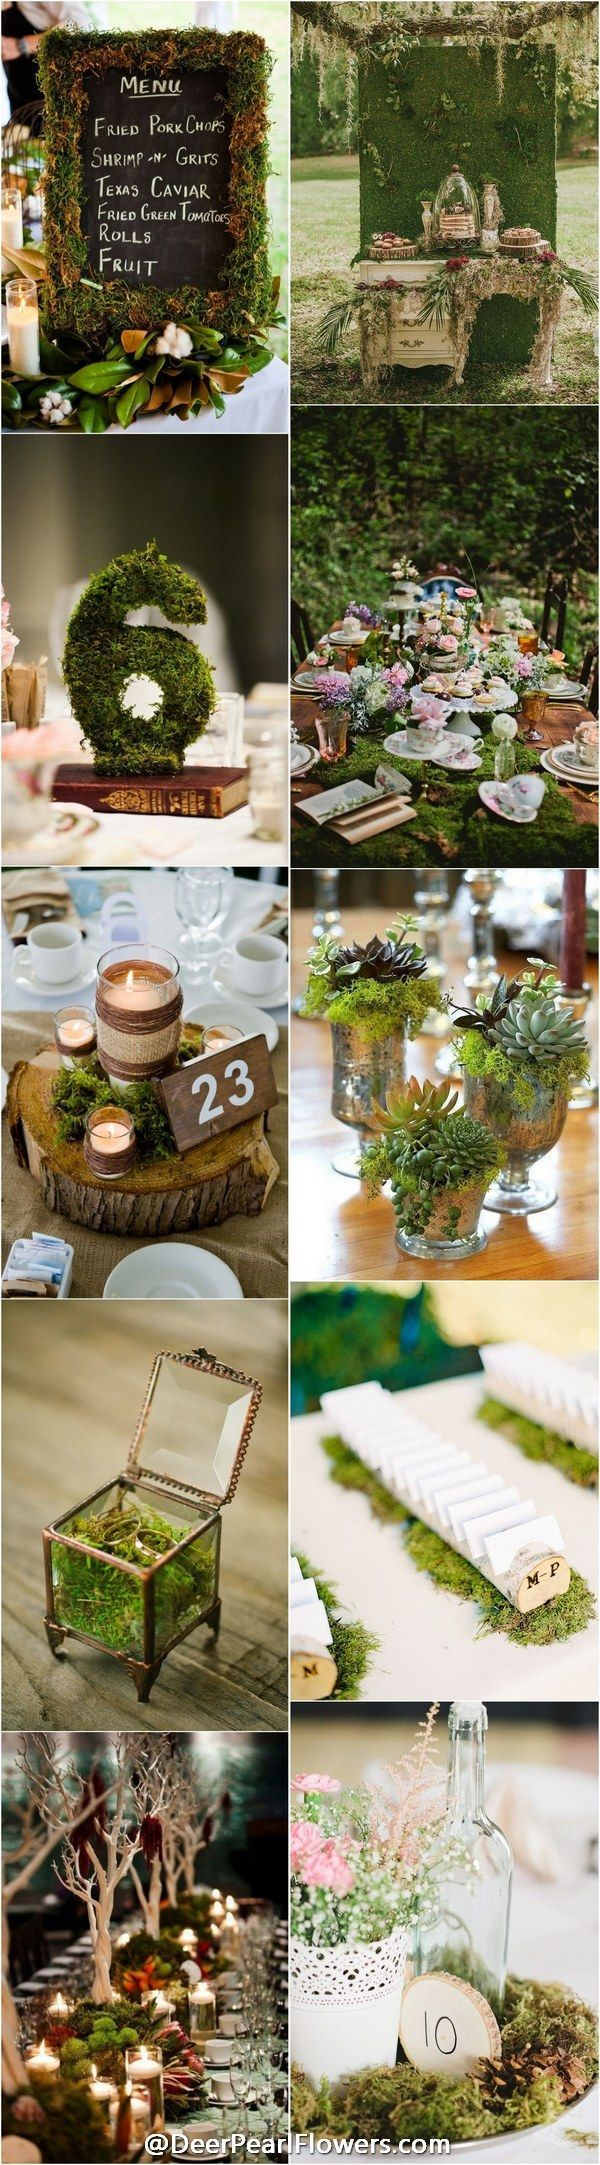 woodland moss wedding ideas - rustic country wedding ideas  / http://www.deerpearlflowers.com/moss-decor-ideas-for-a-nature-wedding/